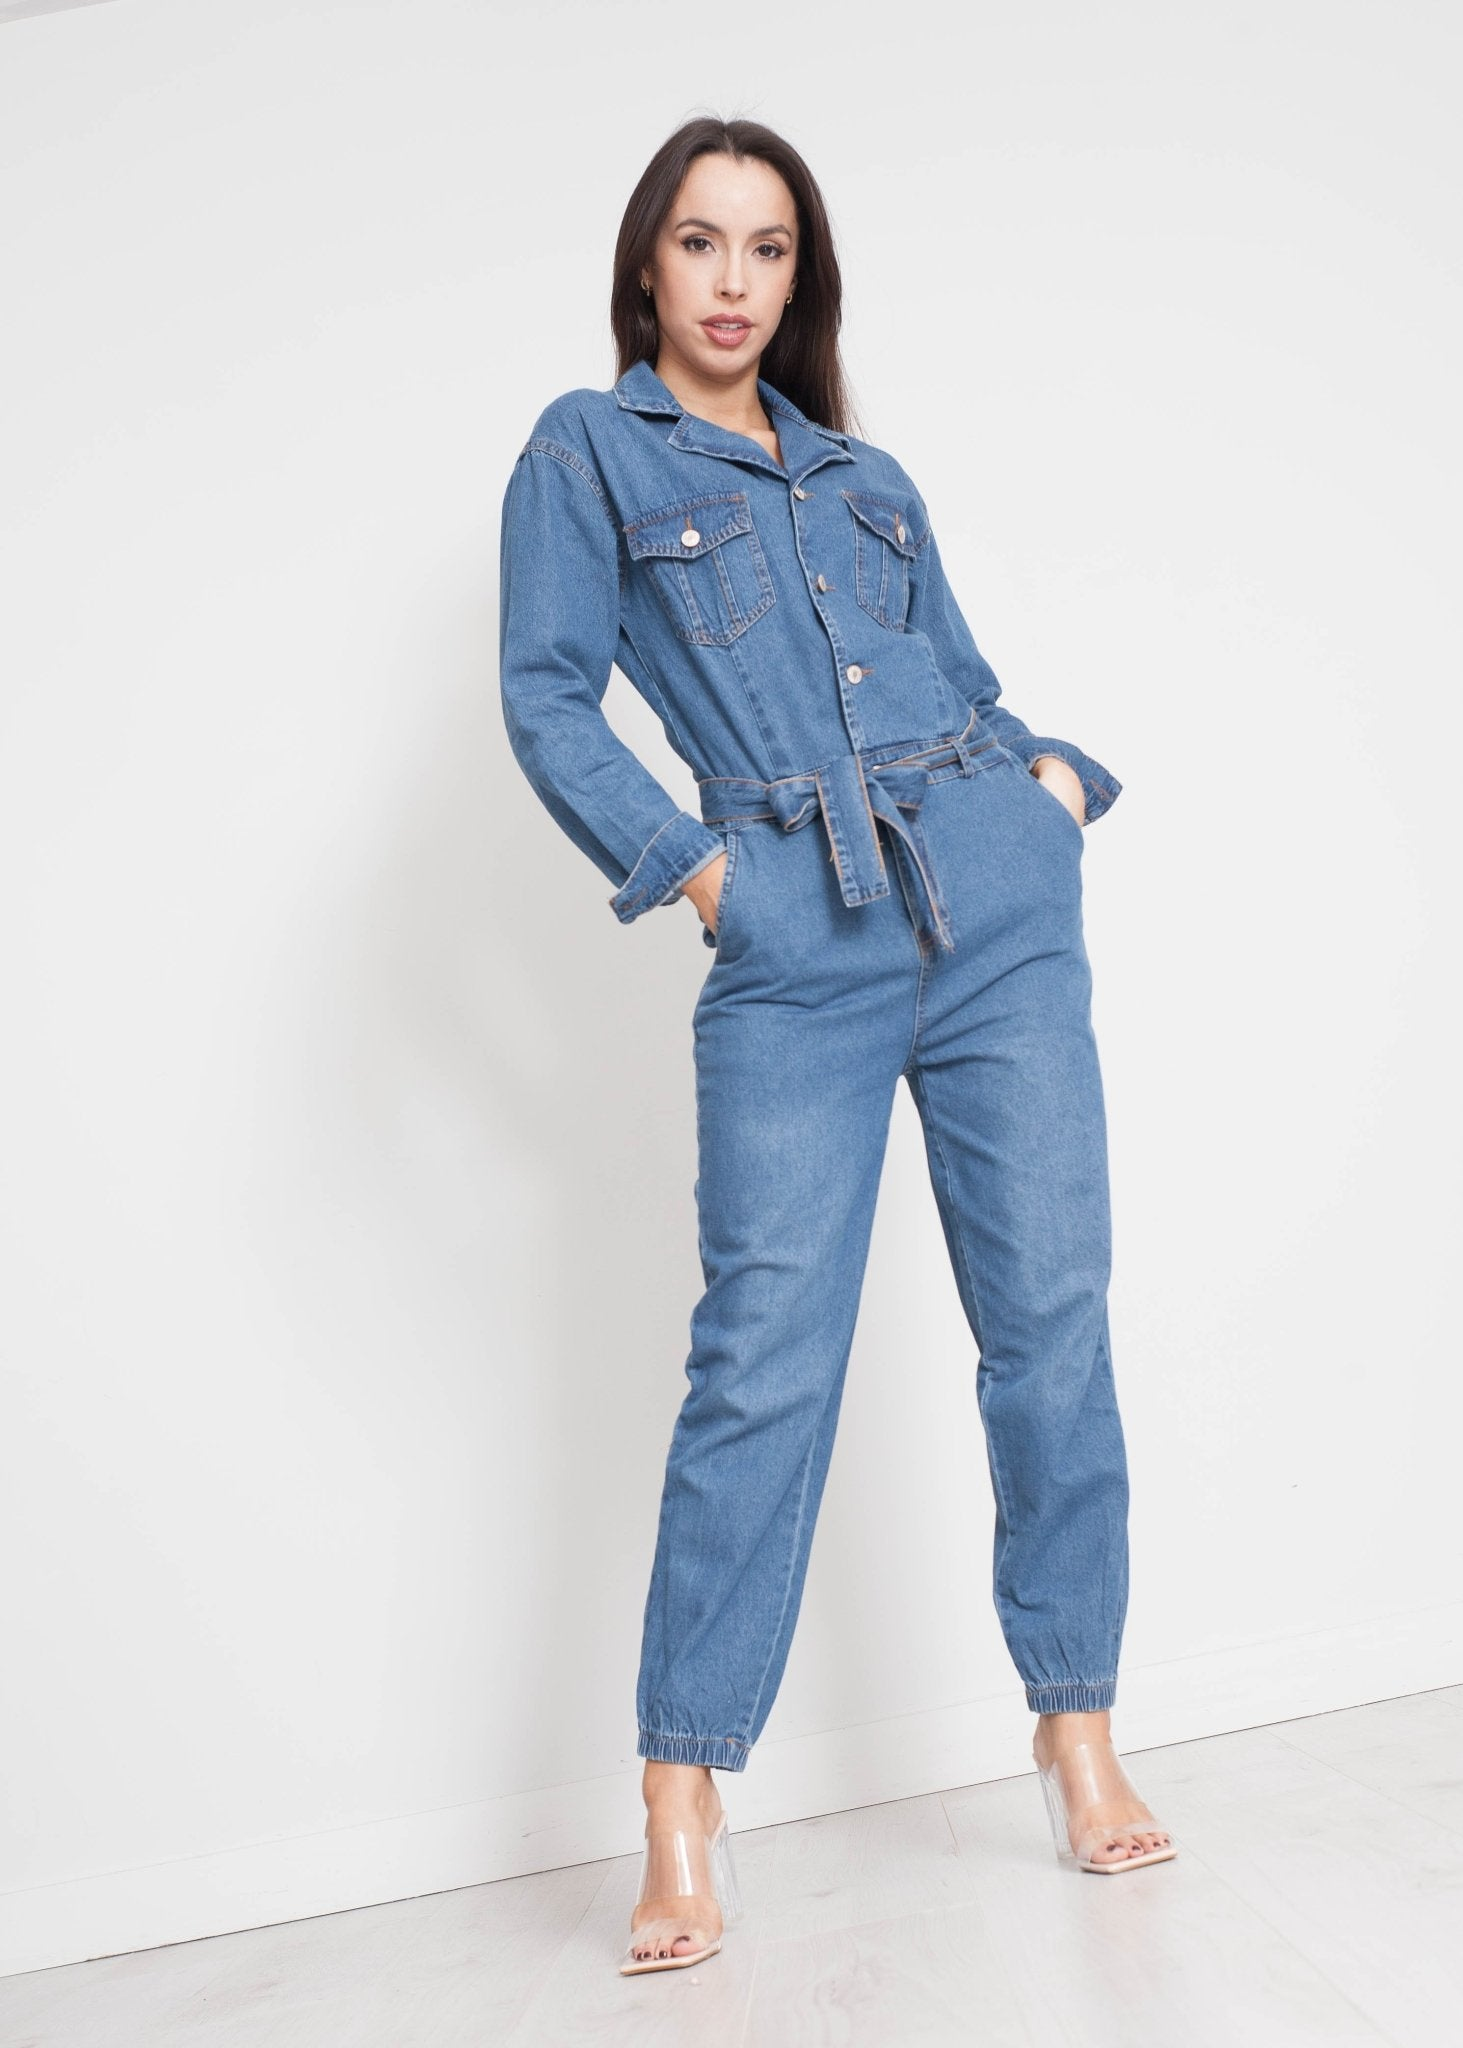 Samantha Jumpsuit In Denim - The Walk in Wardrobe